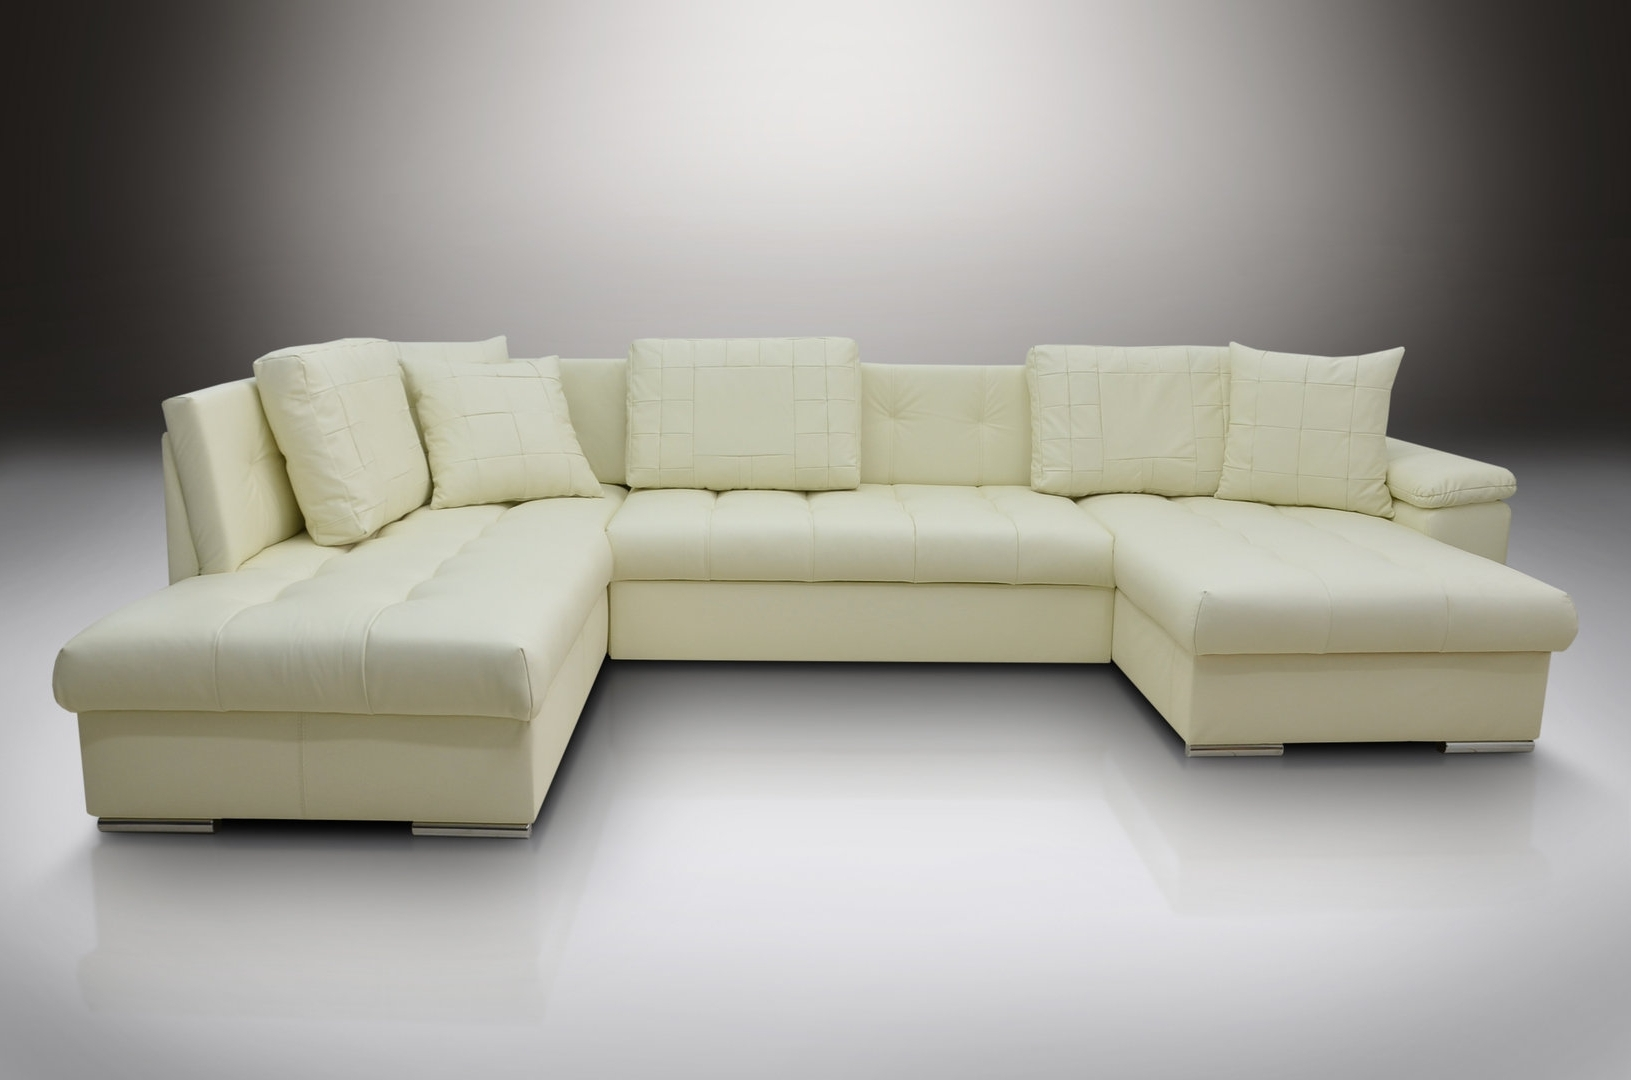 Sofa : Extra Large Sectional Sofas U Shaped Sofa Design In Well Known Blue U Shaped Sectionals (View 19 of 20)